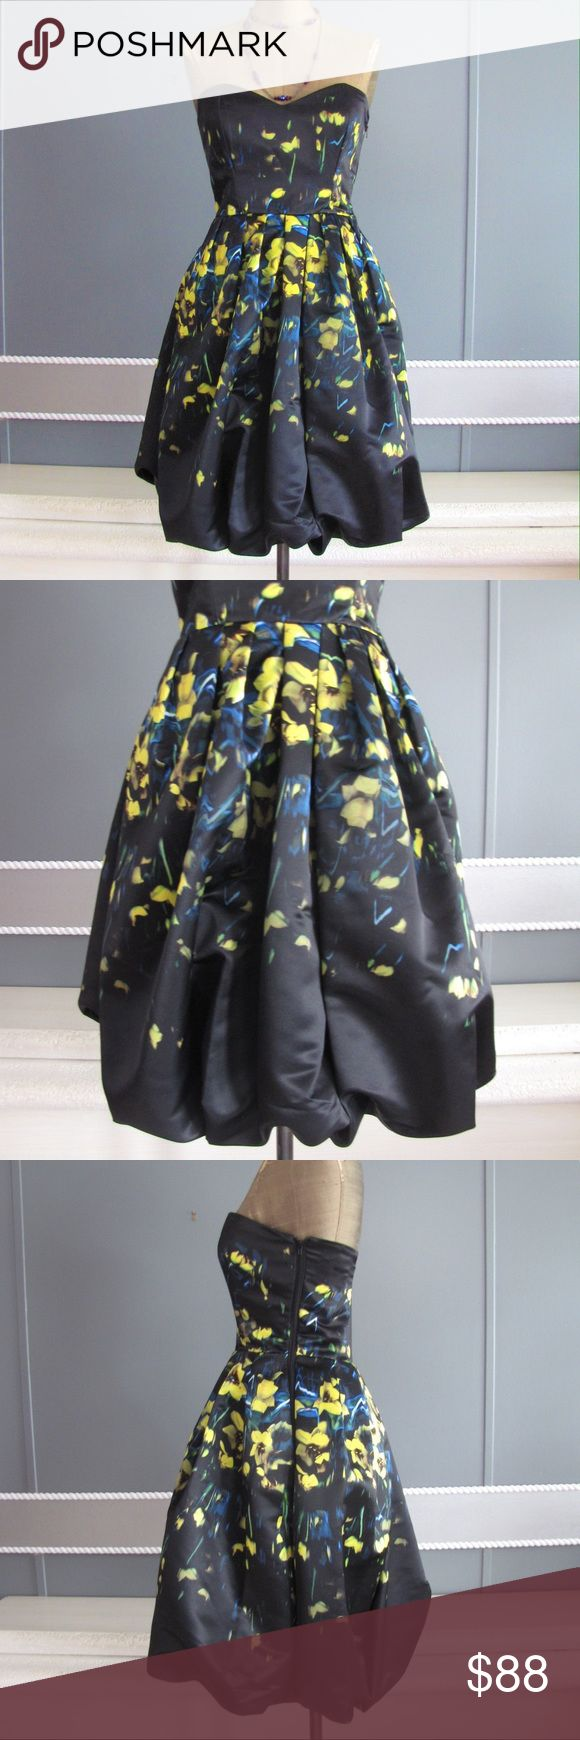 Parker black label bubble strapless dress sz 2 Parker Black Label strapless bubble hem dress *Sz 2  *new with tags *Color/pattern: swallow tail. Black with yellow and blue  *strapless design *pleated skirt *dual on-seam pockets  *elasticized back bodice *bubble hem. Parker Dresses Strapless